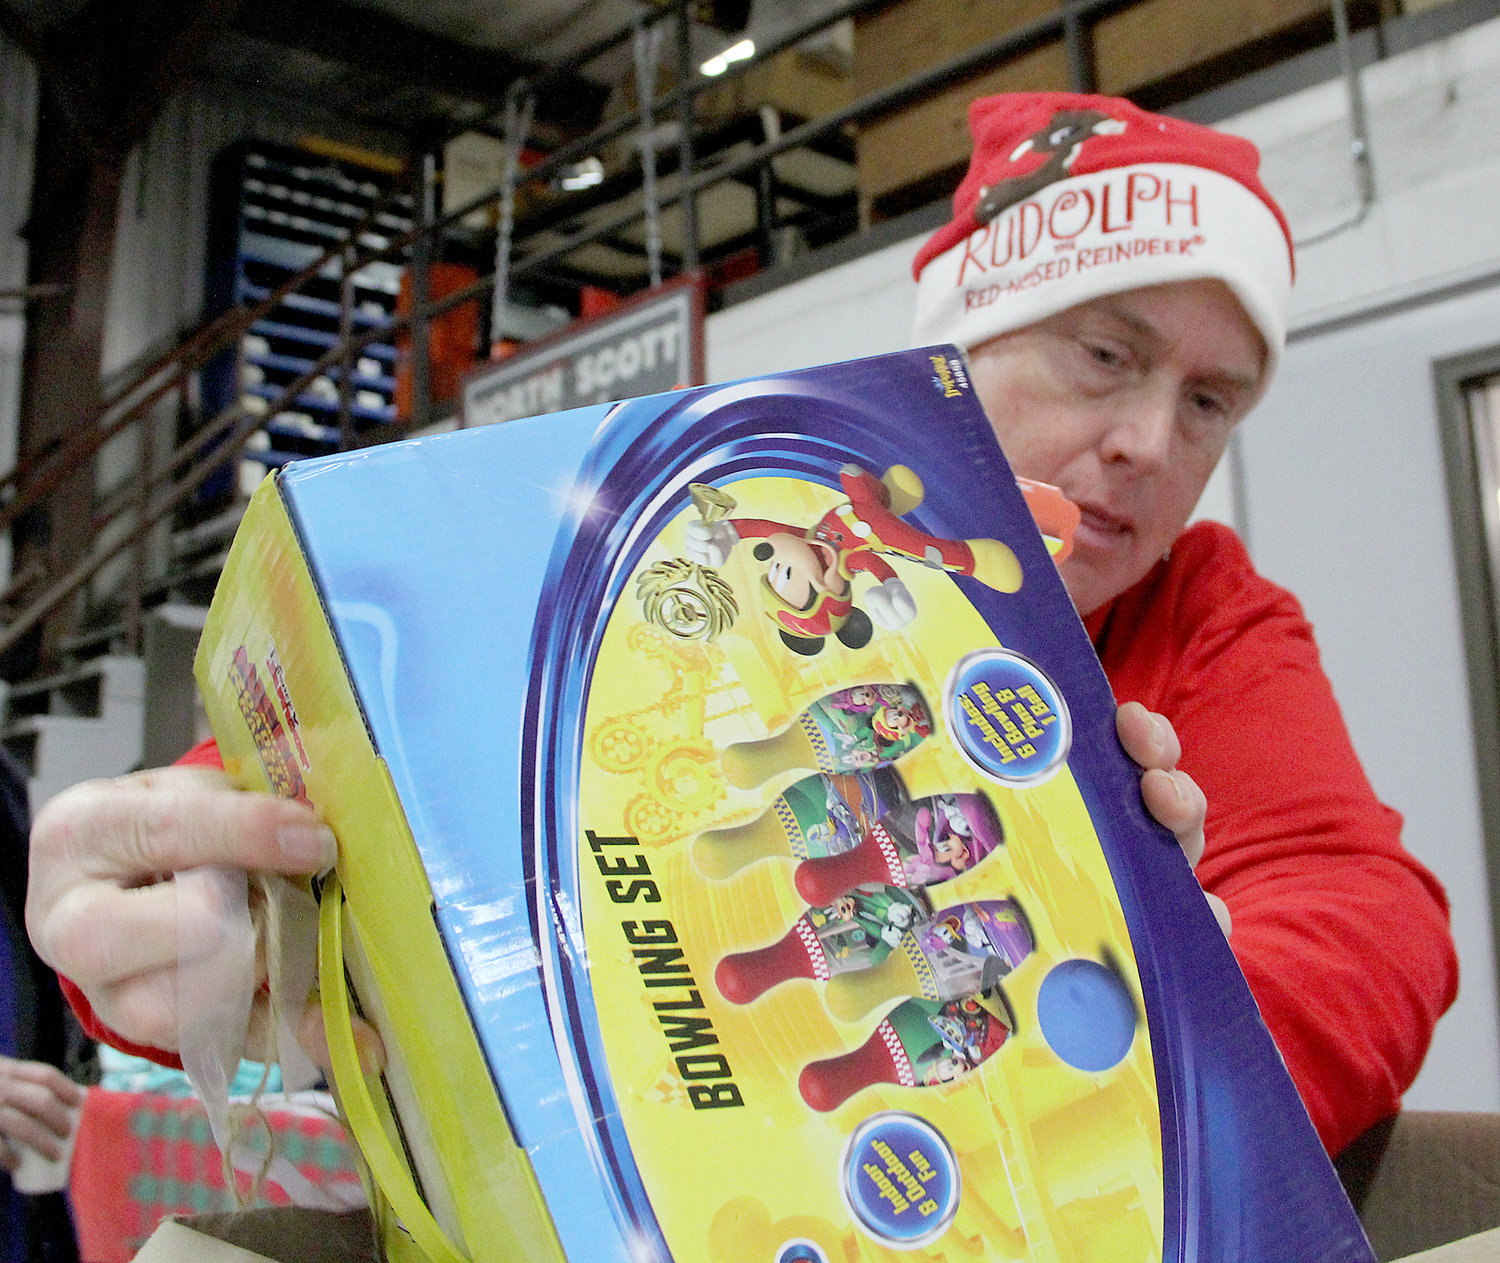 On Nov. 30, North Scott bus drivers continued their Christmas tradition of delivering presents and gift baskets. Transportation director Luann Baetke and crew purchased, wrapped and helped deliver hundreds of presents across the North Scott area.